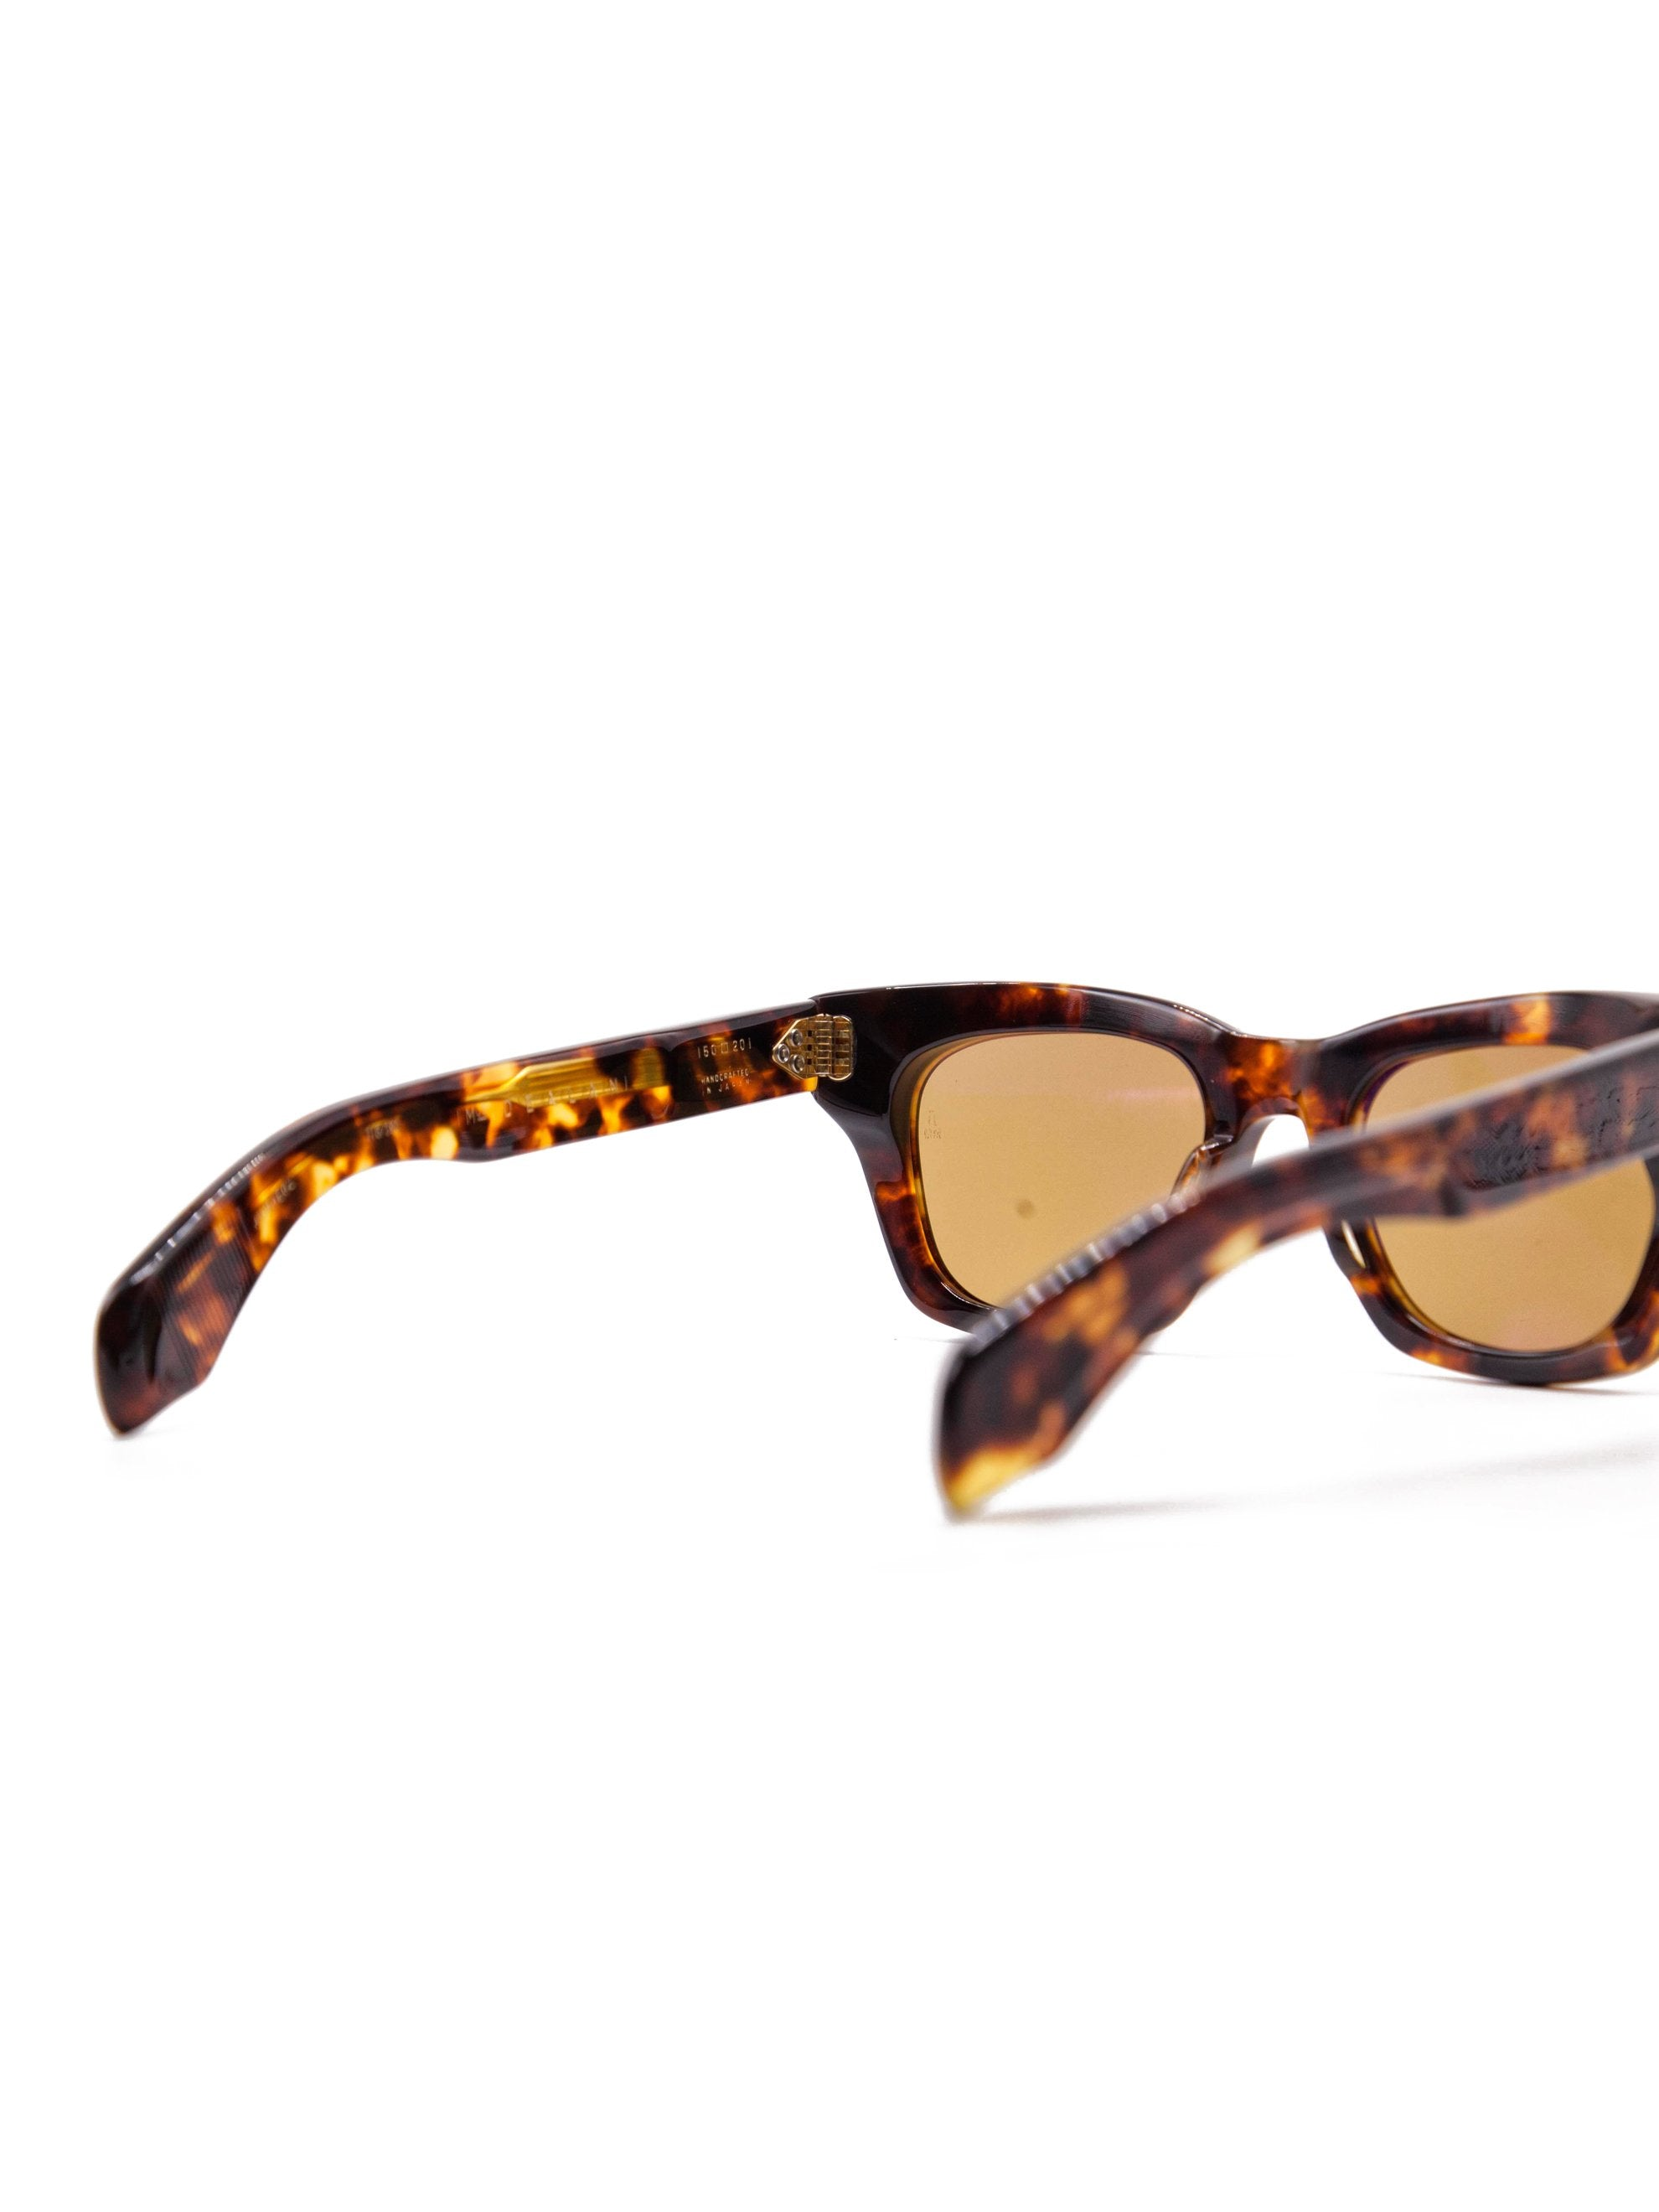 Havana (Brown Glass/10k Gold) Dealan 3